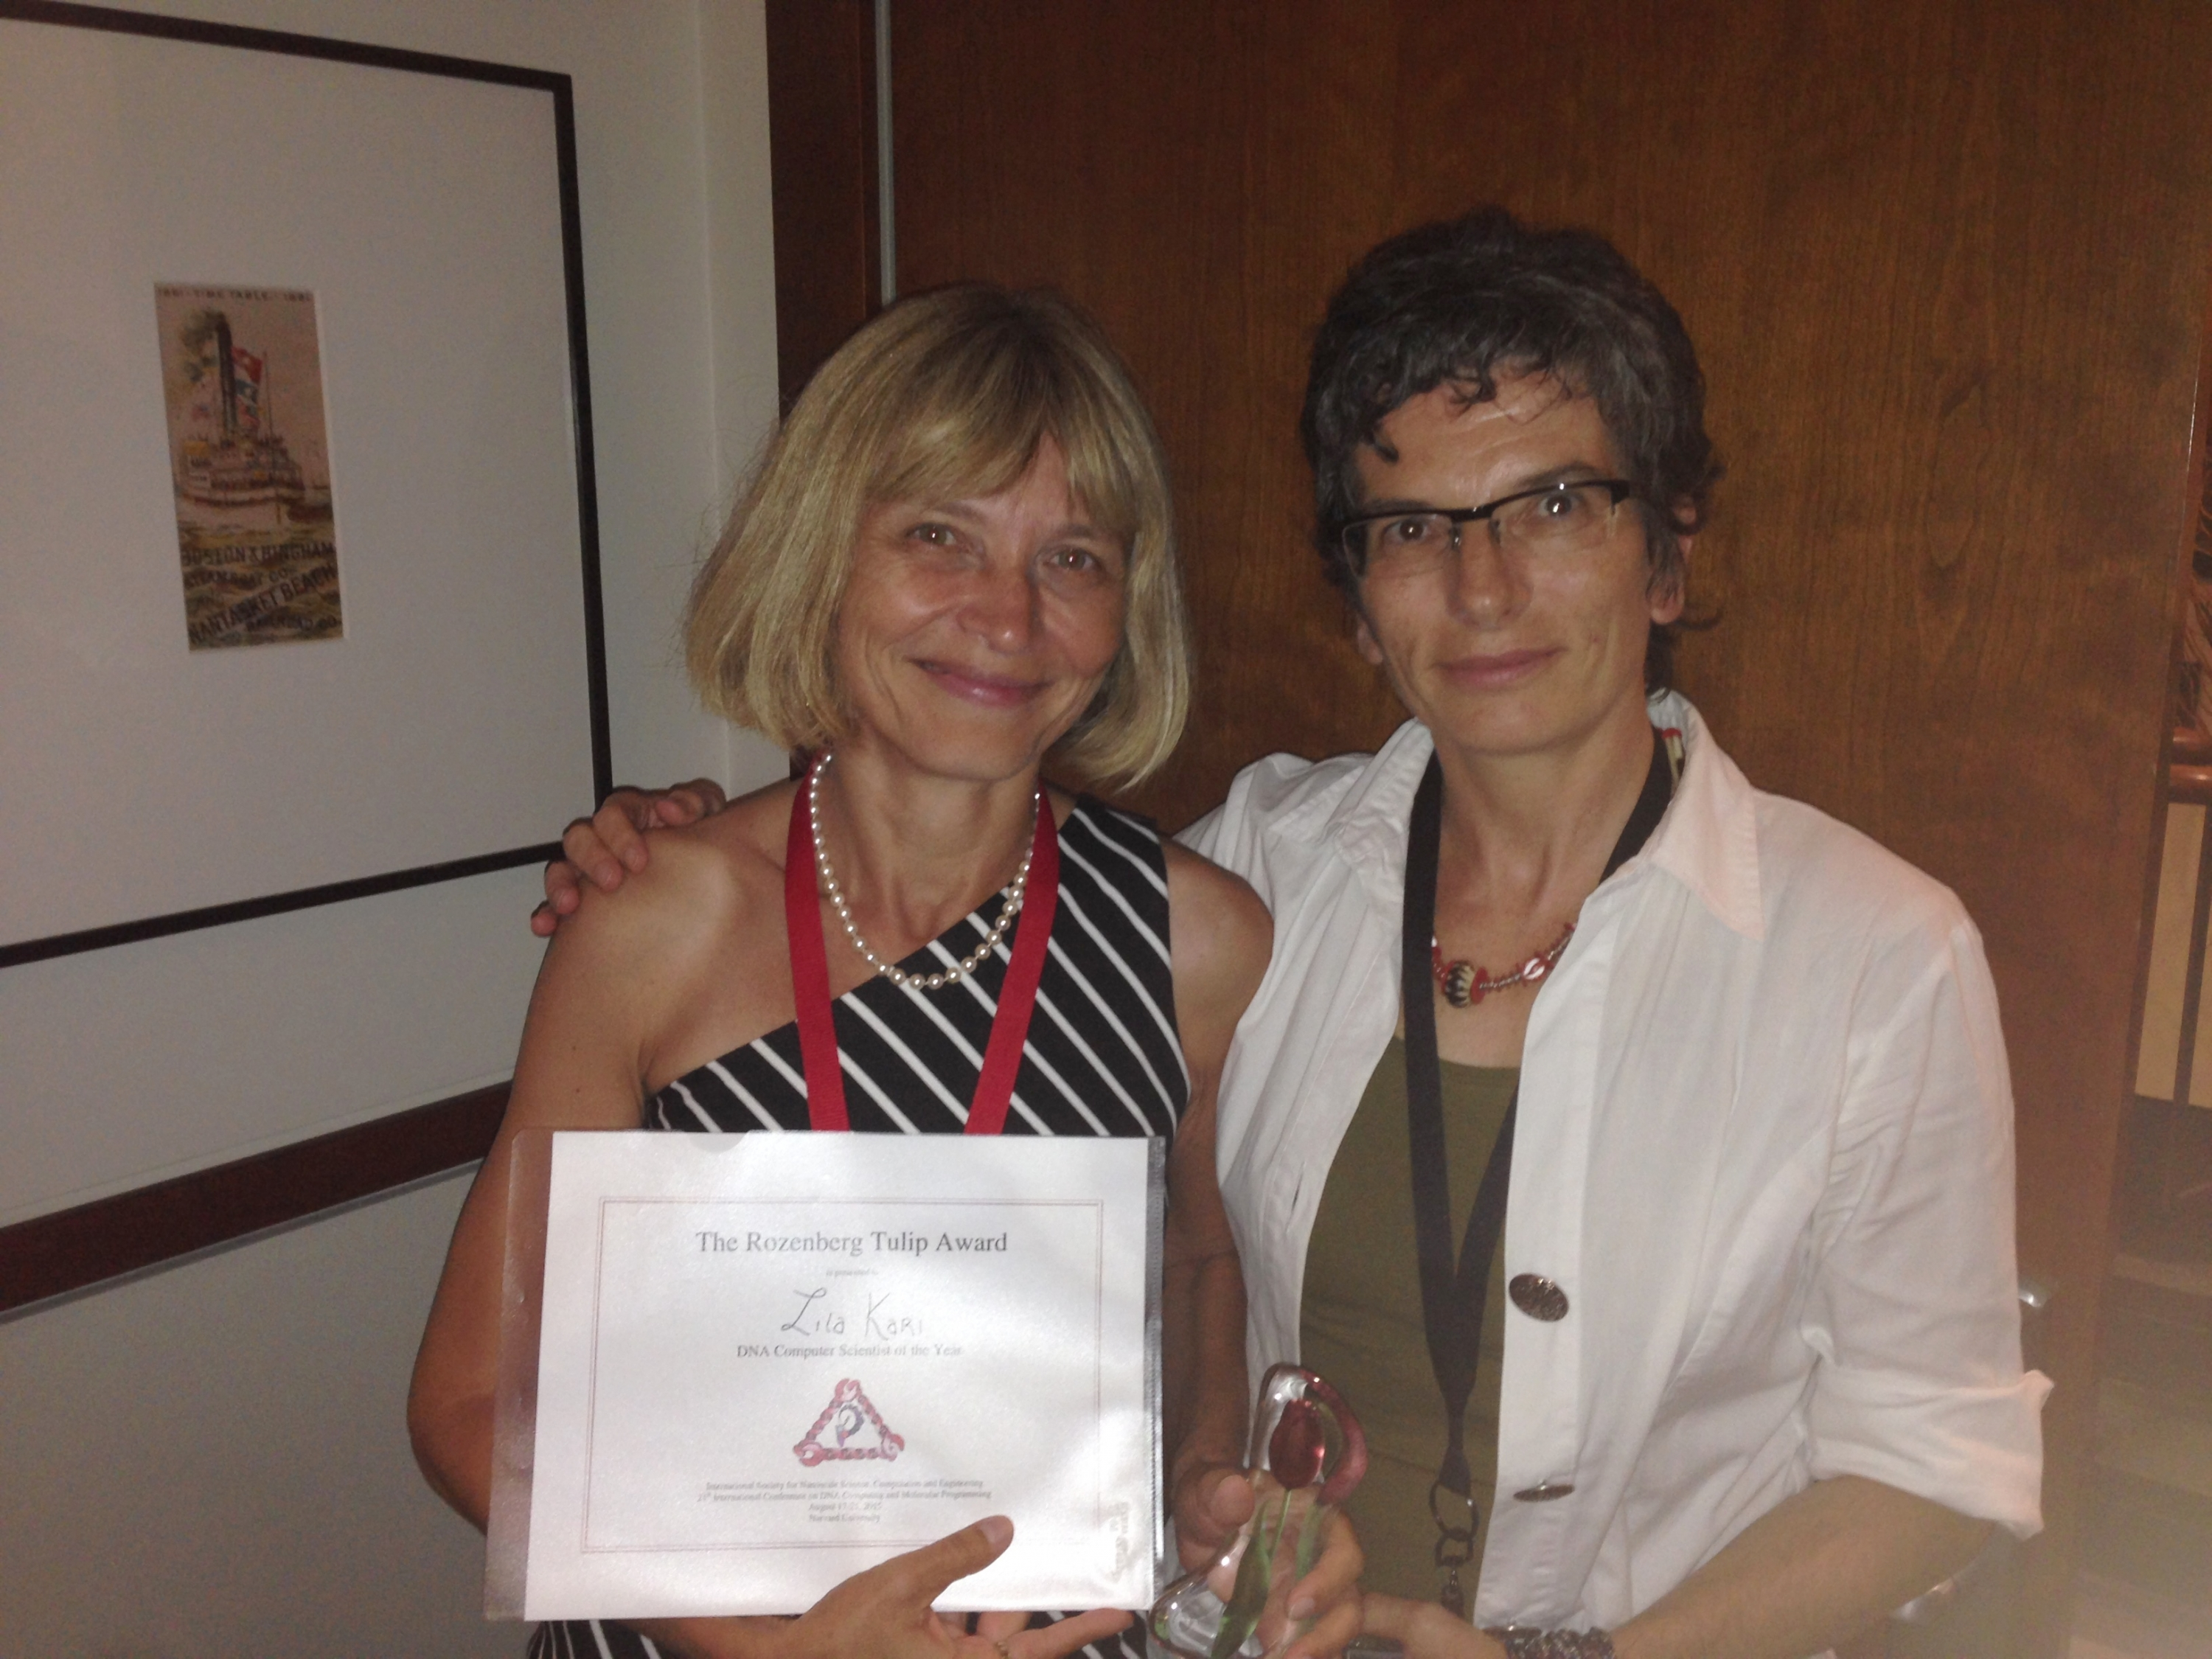 Lila Kari recieving the Rozenberg Tulip Award